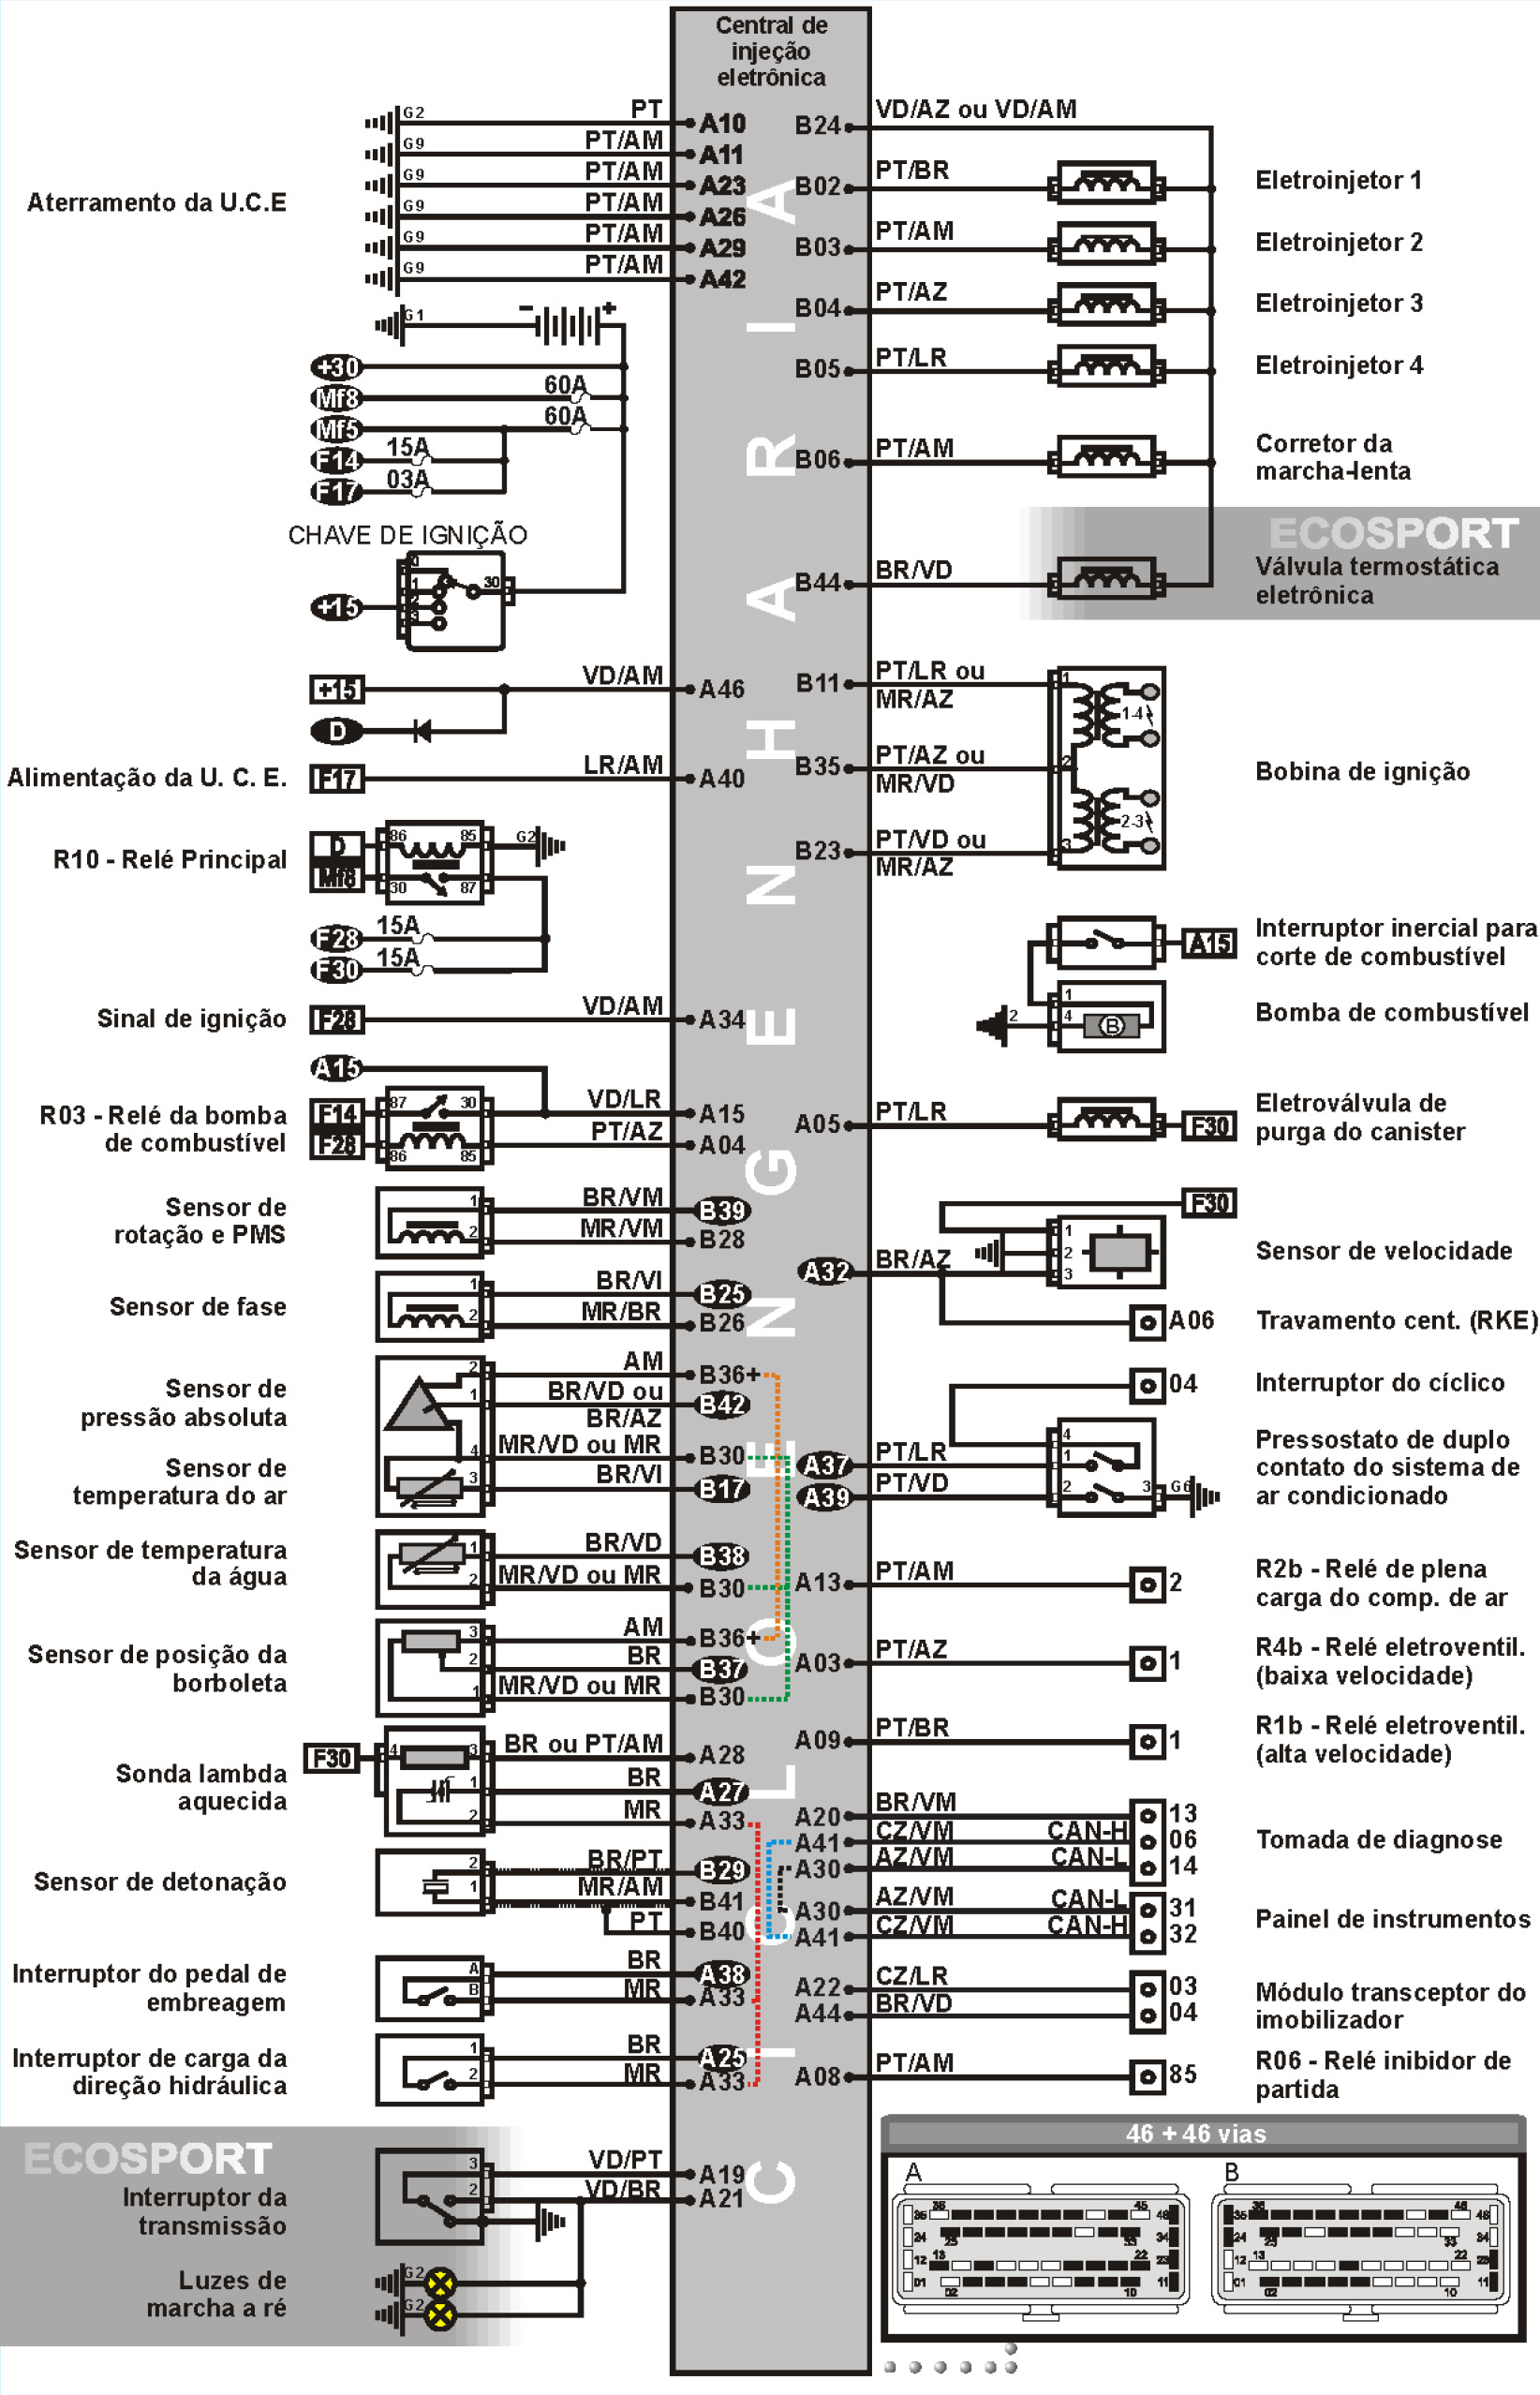 Heated Seats 2006 Ford Fuse Box Diagram. Ford. Auto Fuse